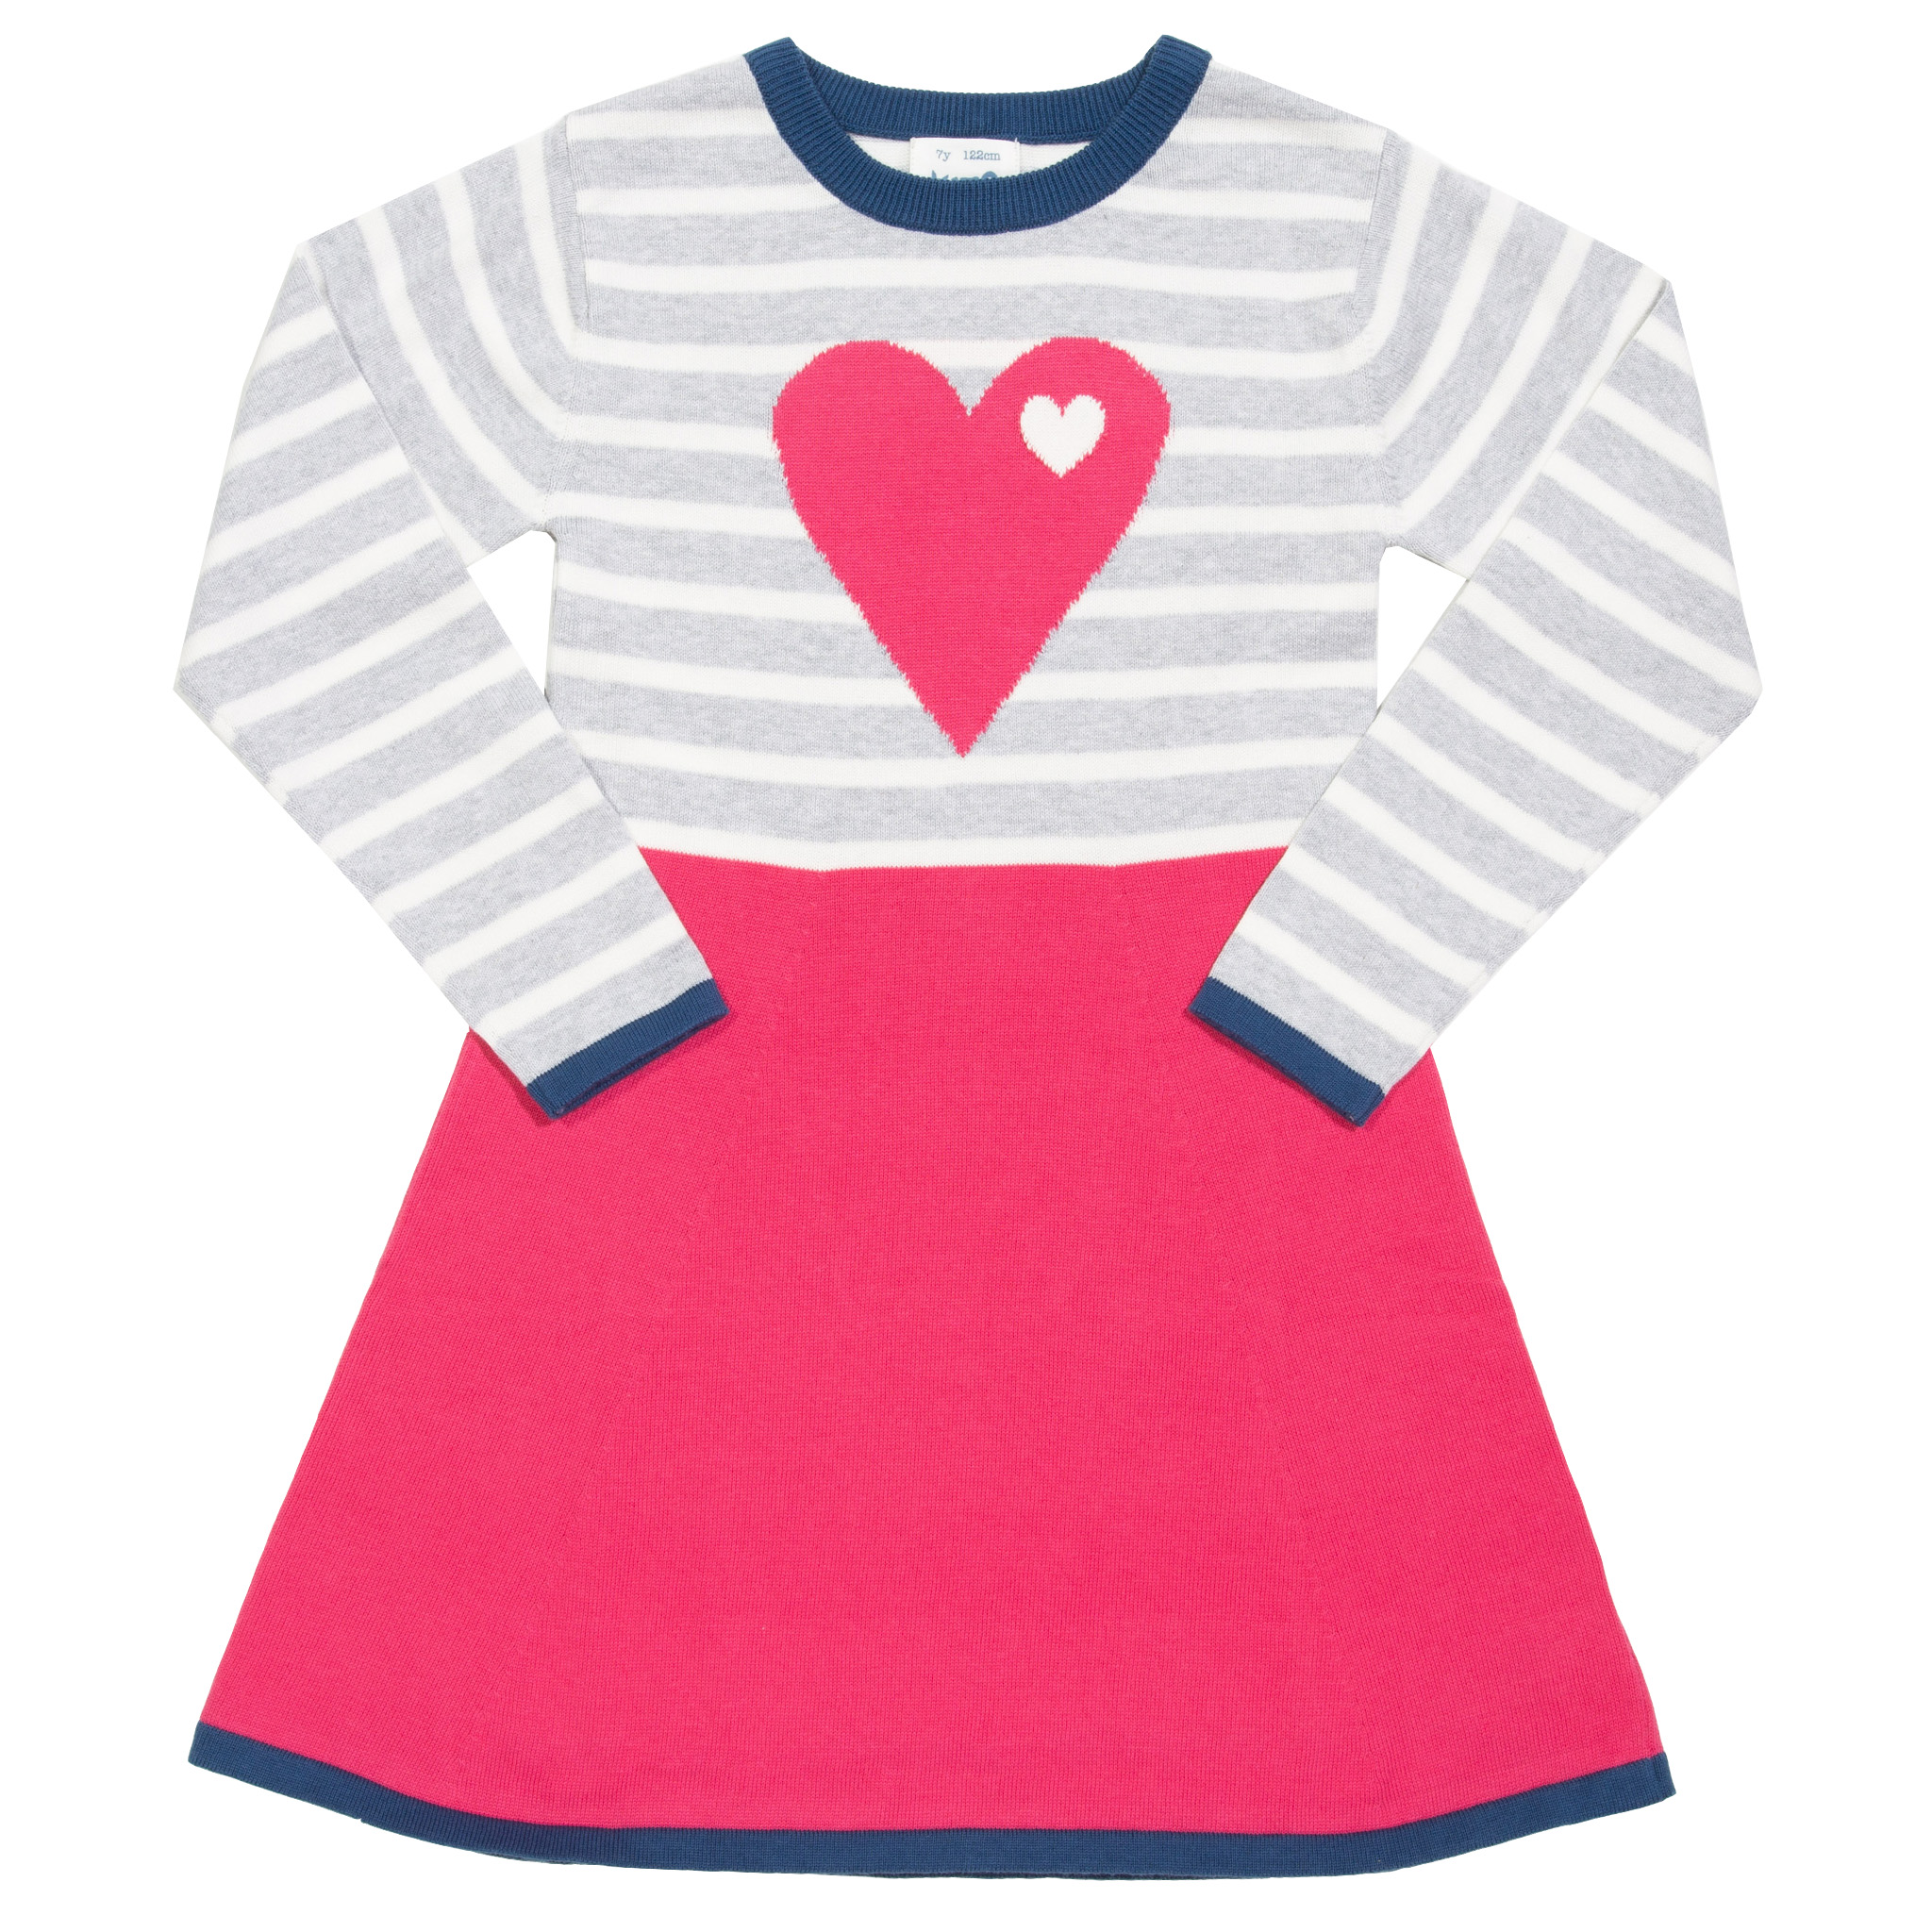 Kite Heart Knit Dress